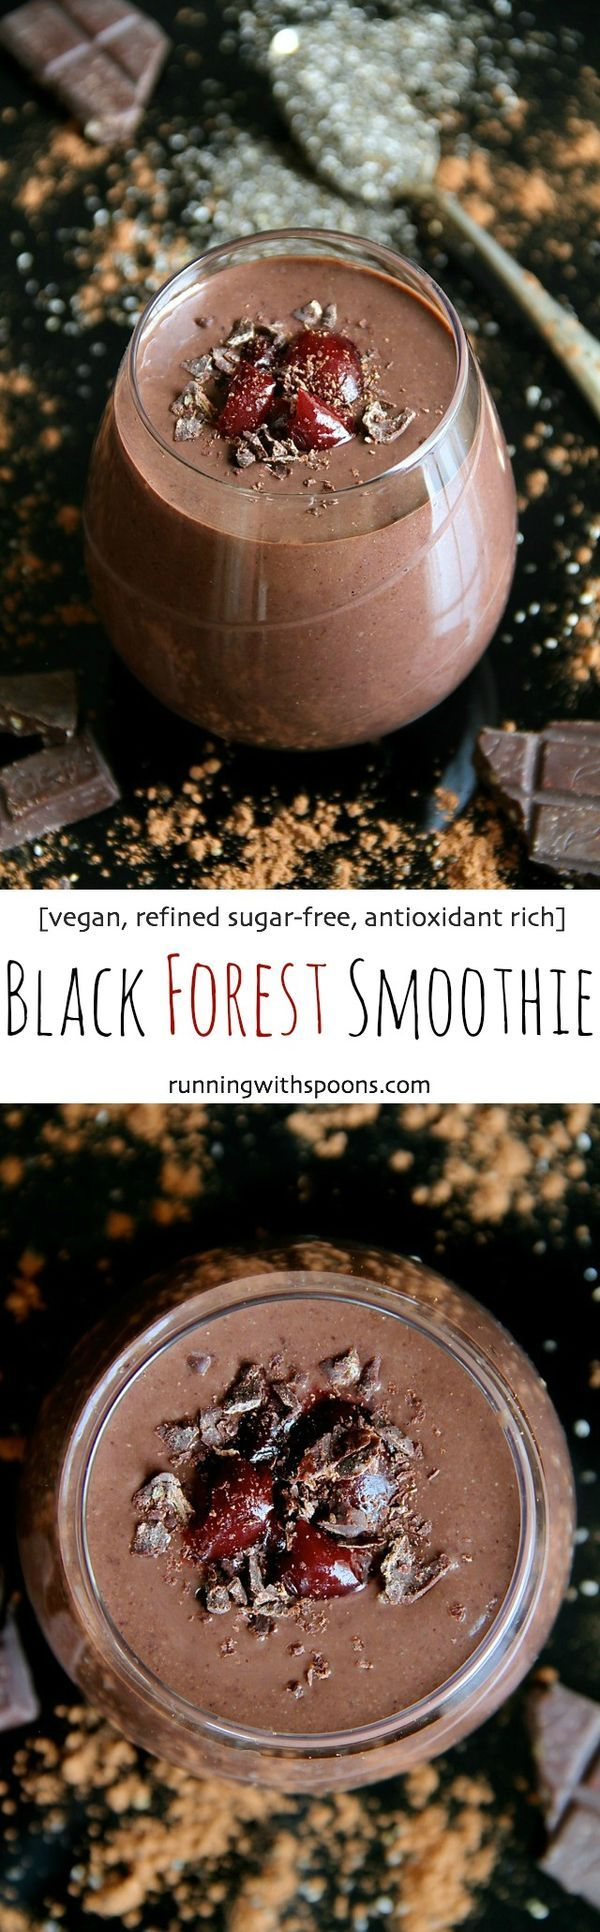 Black Forest Smoothie--naturally sweet and loaded with antioxidants. How can this recipe be healthy? Well it's vegan, refined sugar-free and packed with nutrient foods. You'd never believe it's a super healthy breakfast alternative!